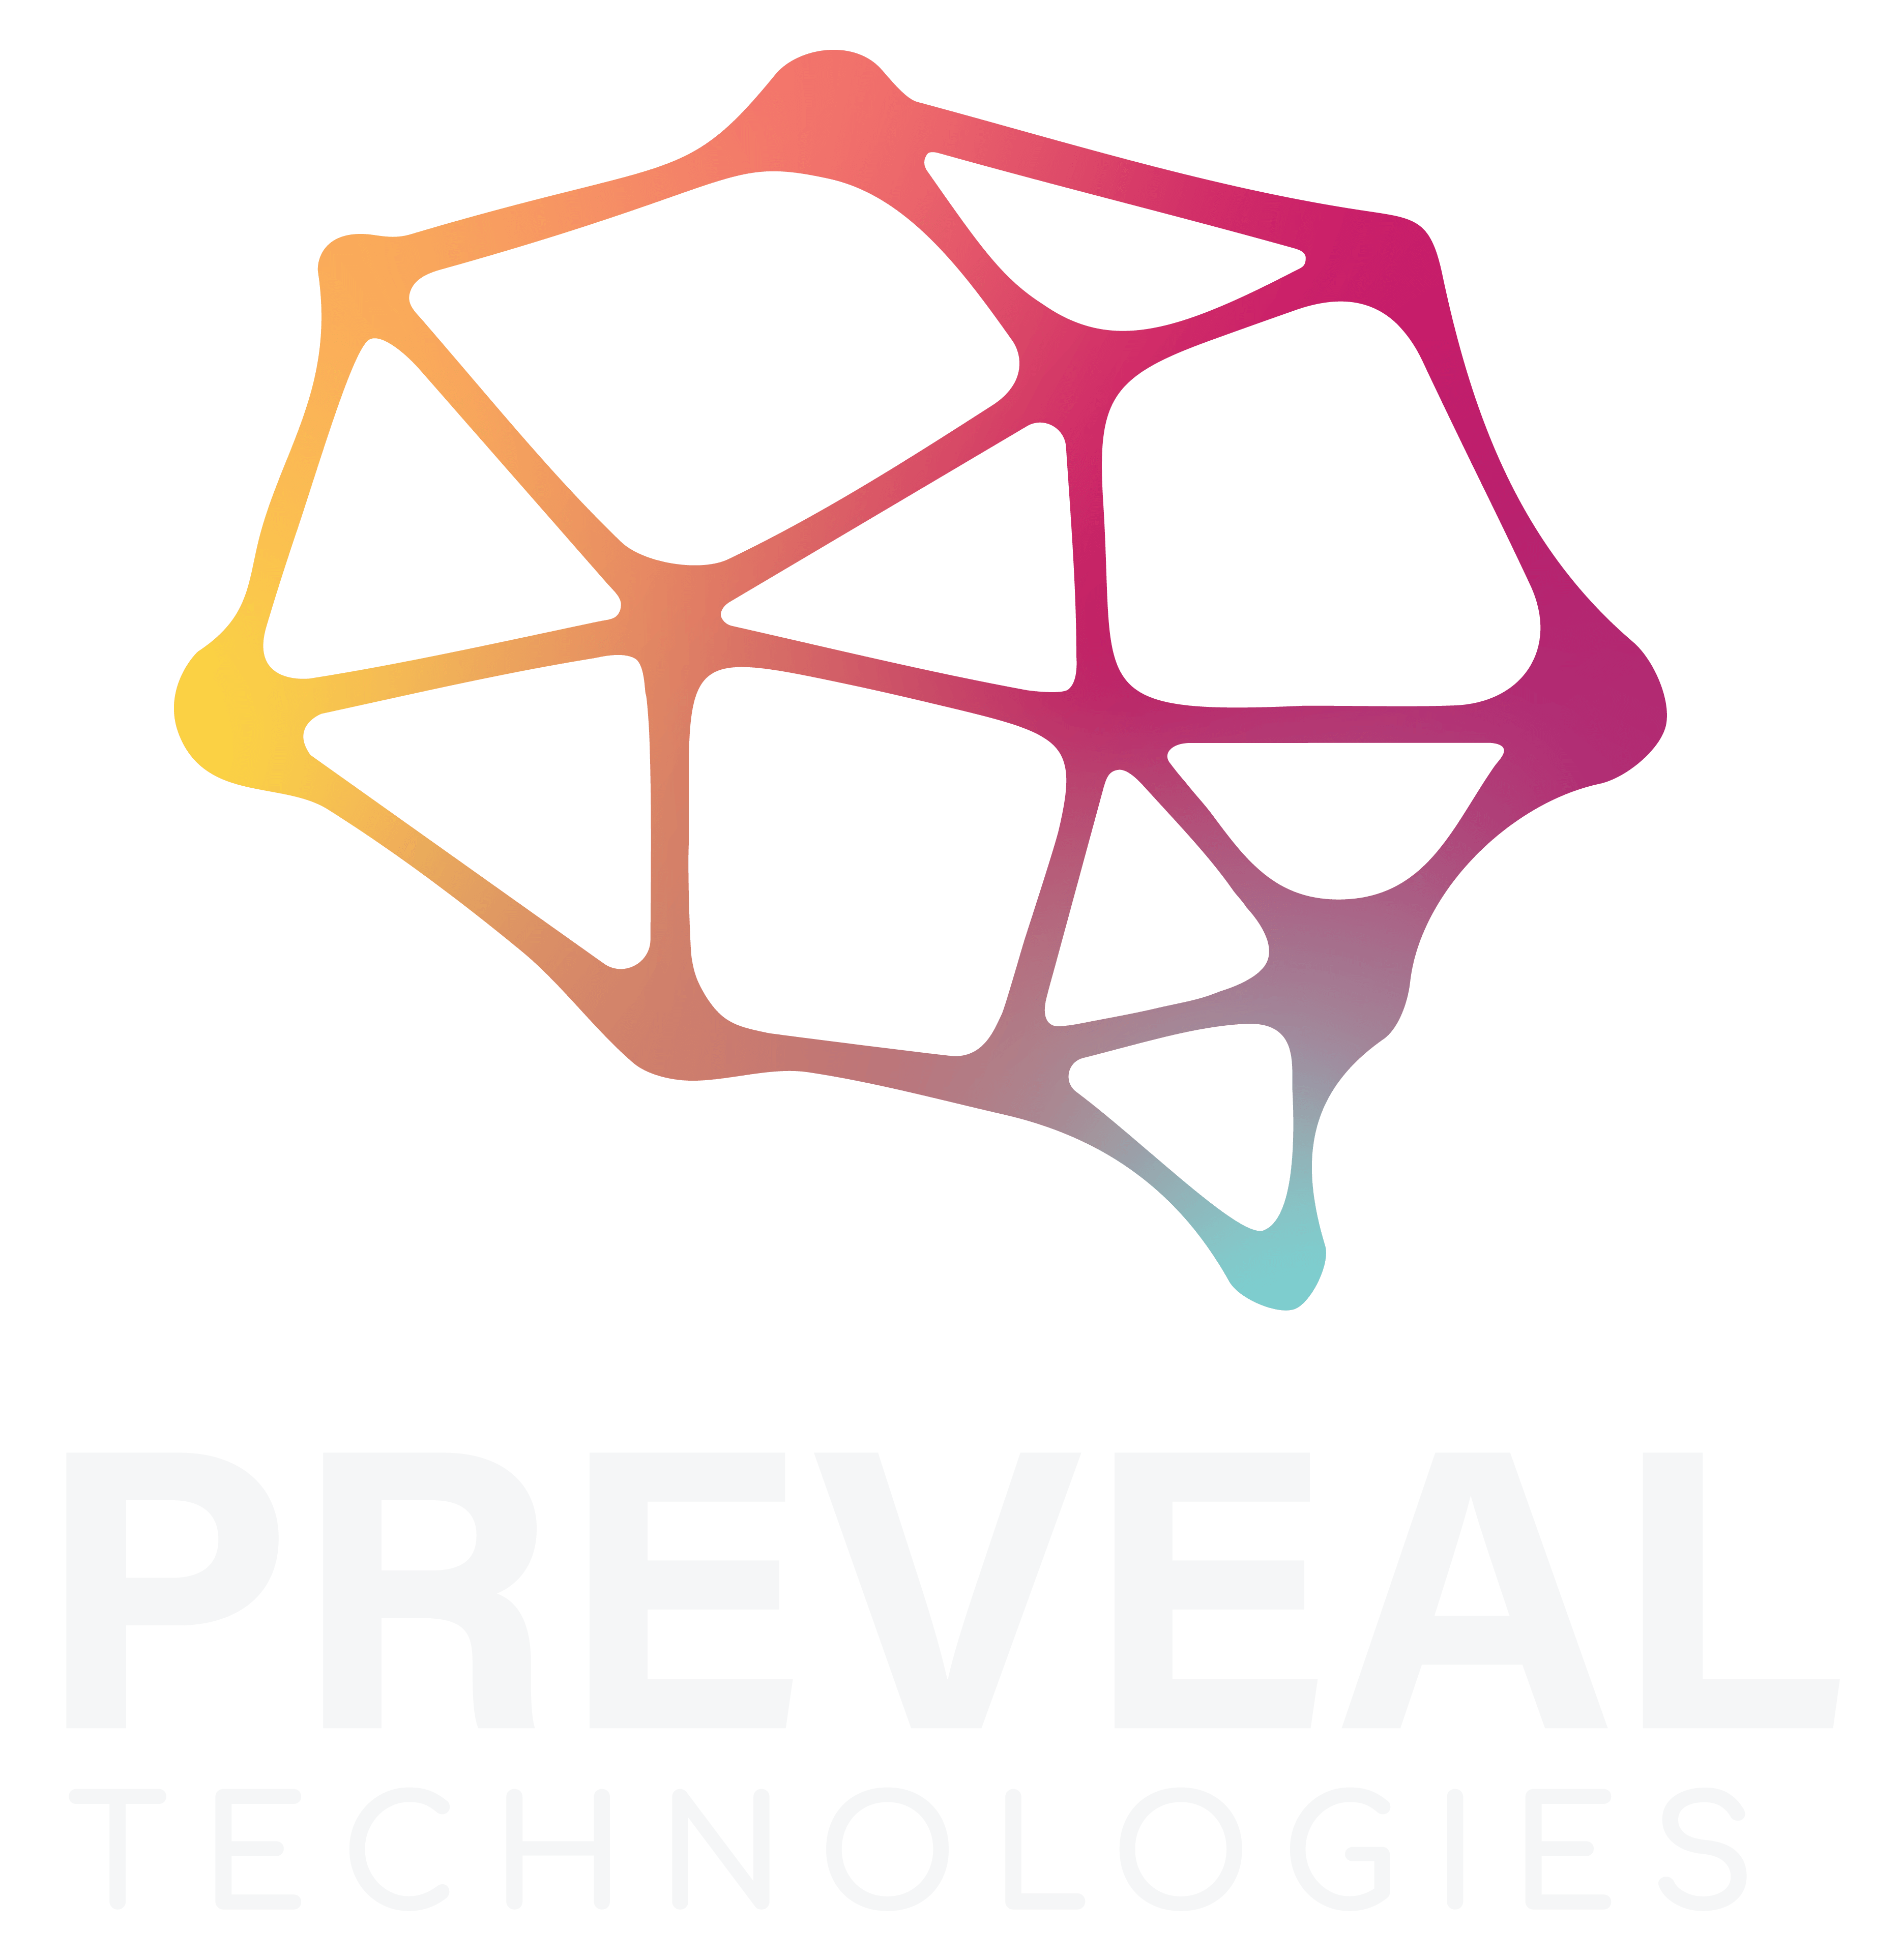 Preveal Technologies